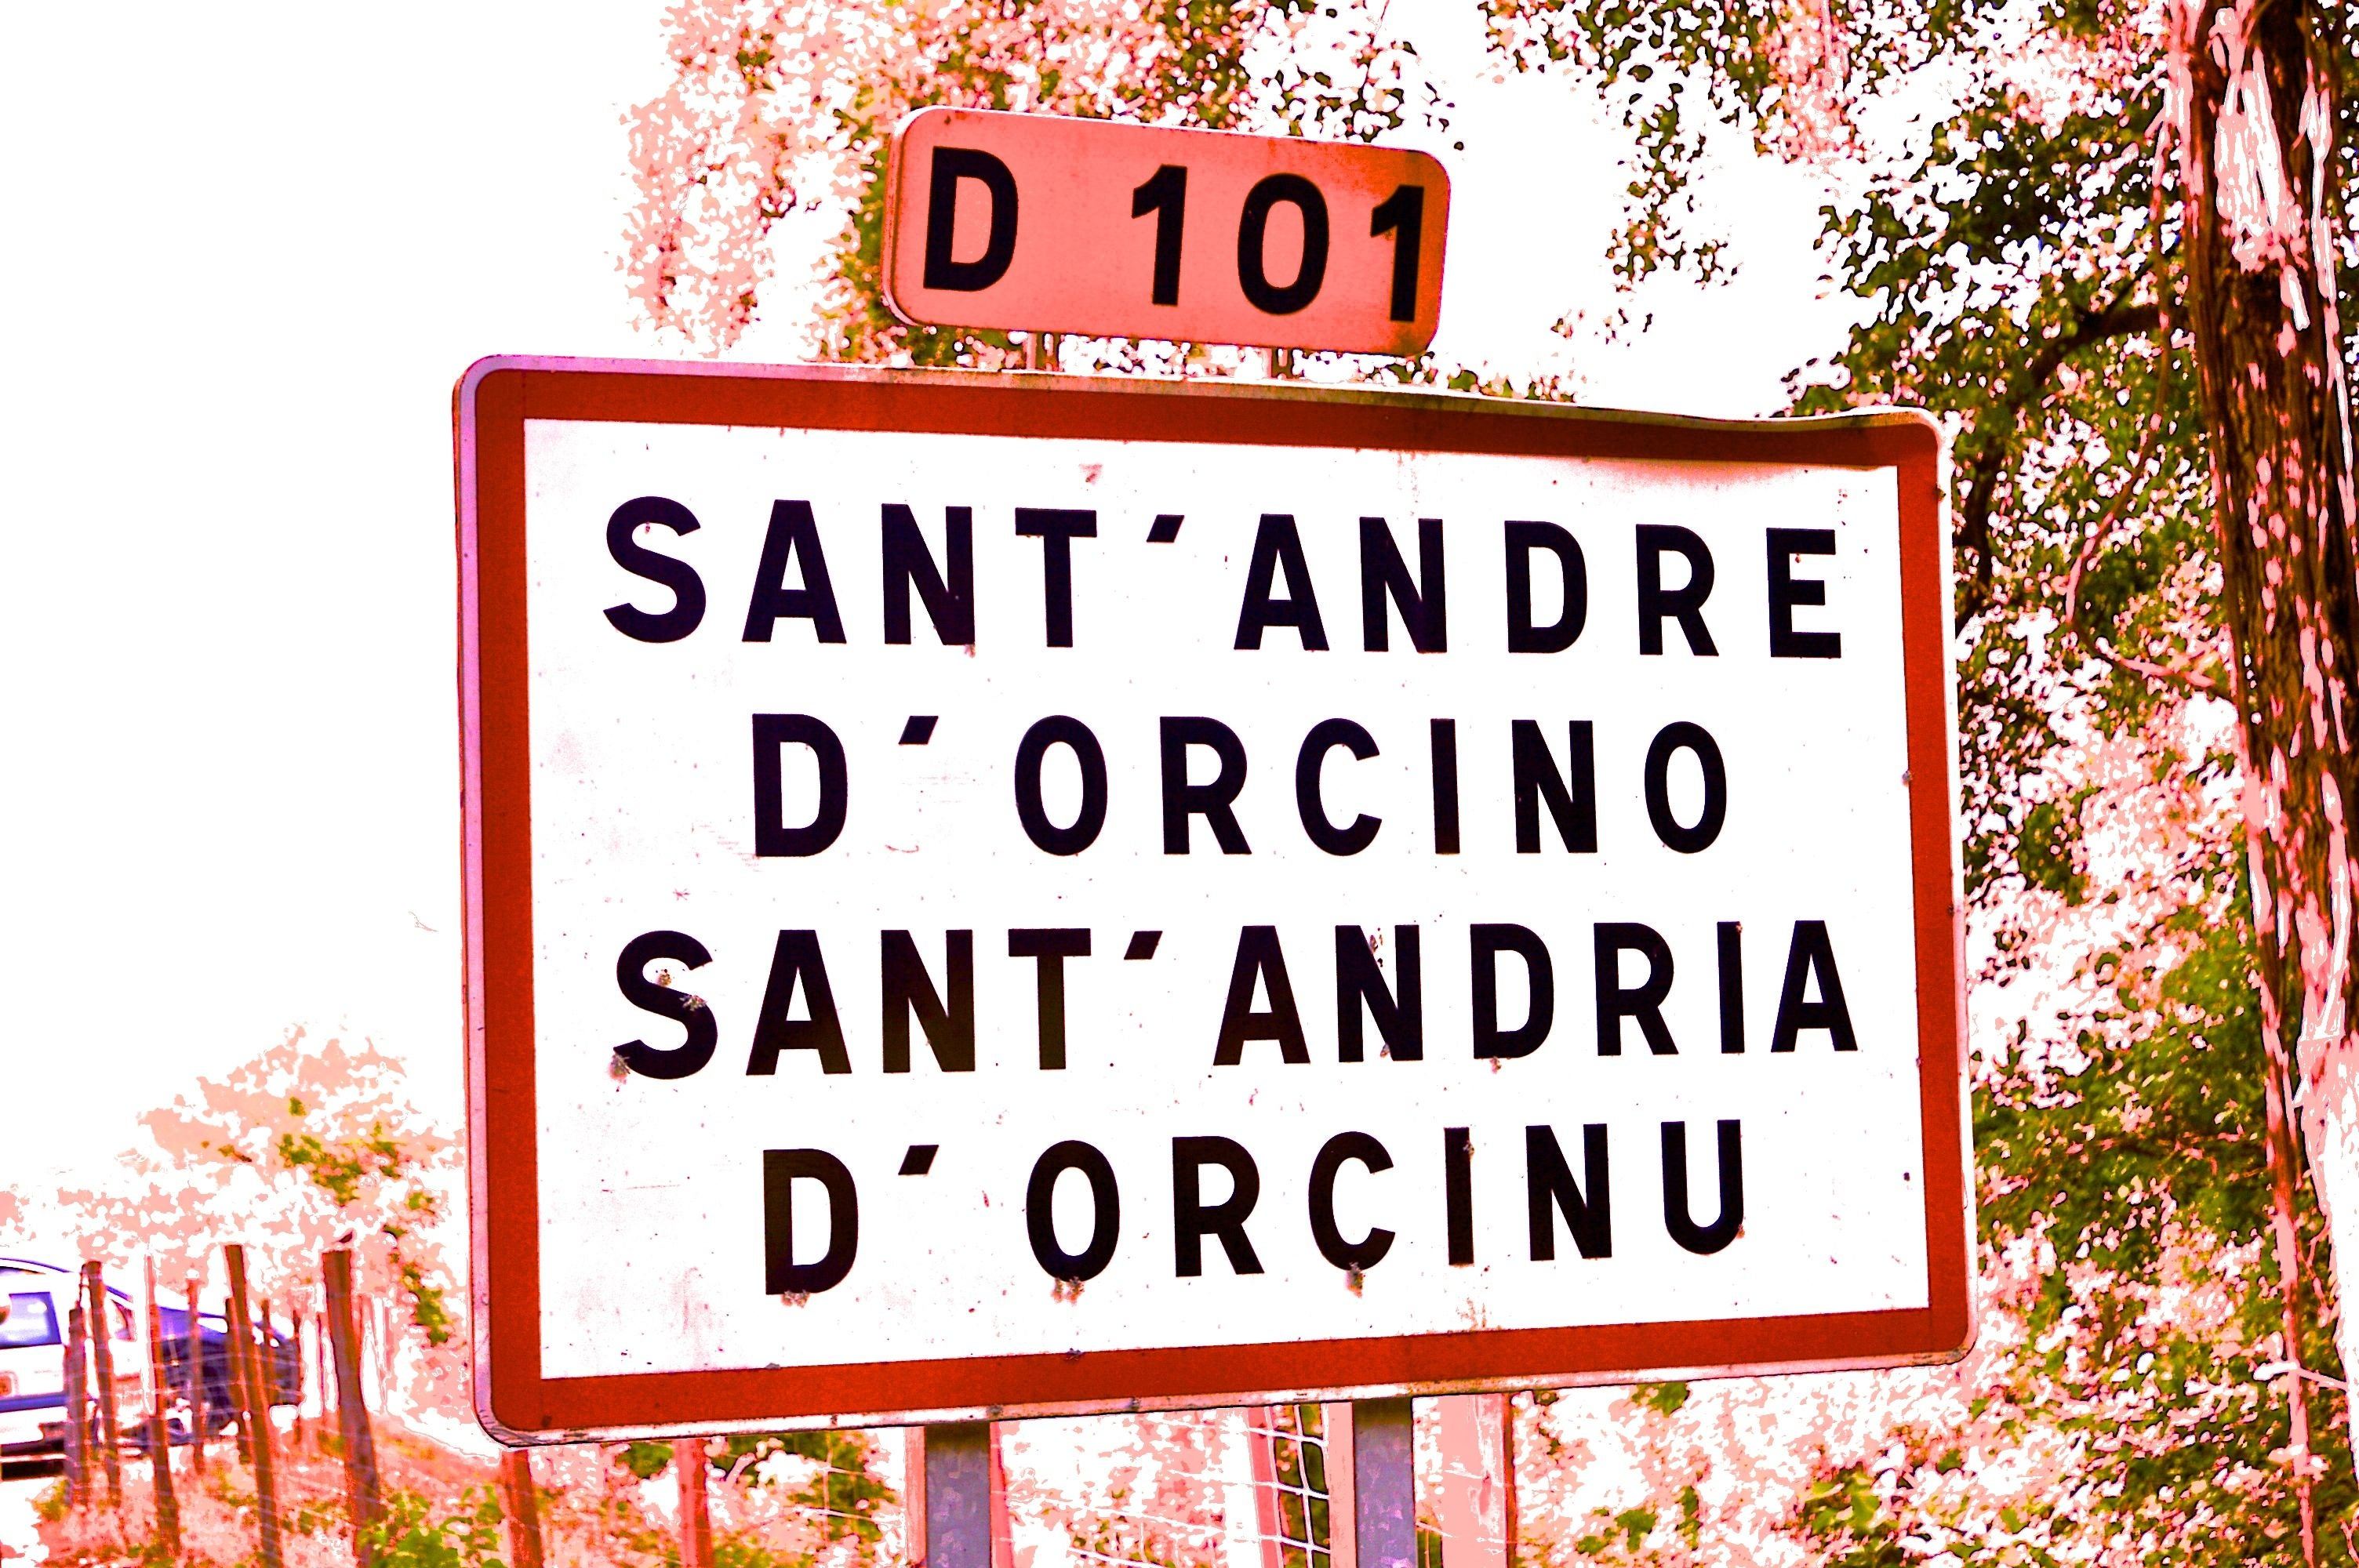 Sant`Andréa d´Orcino